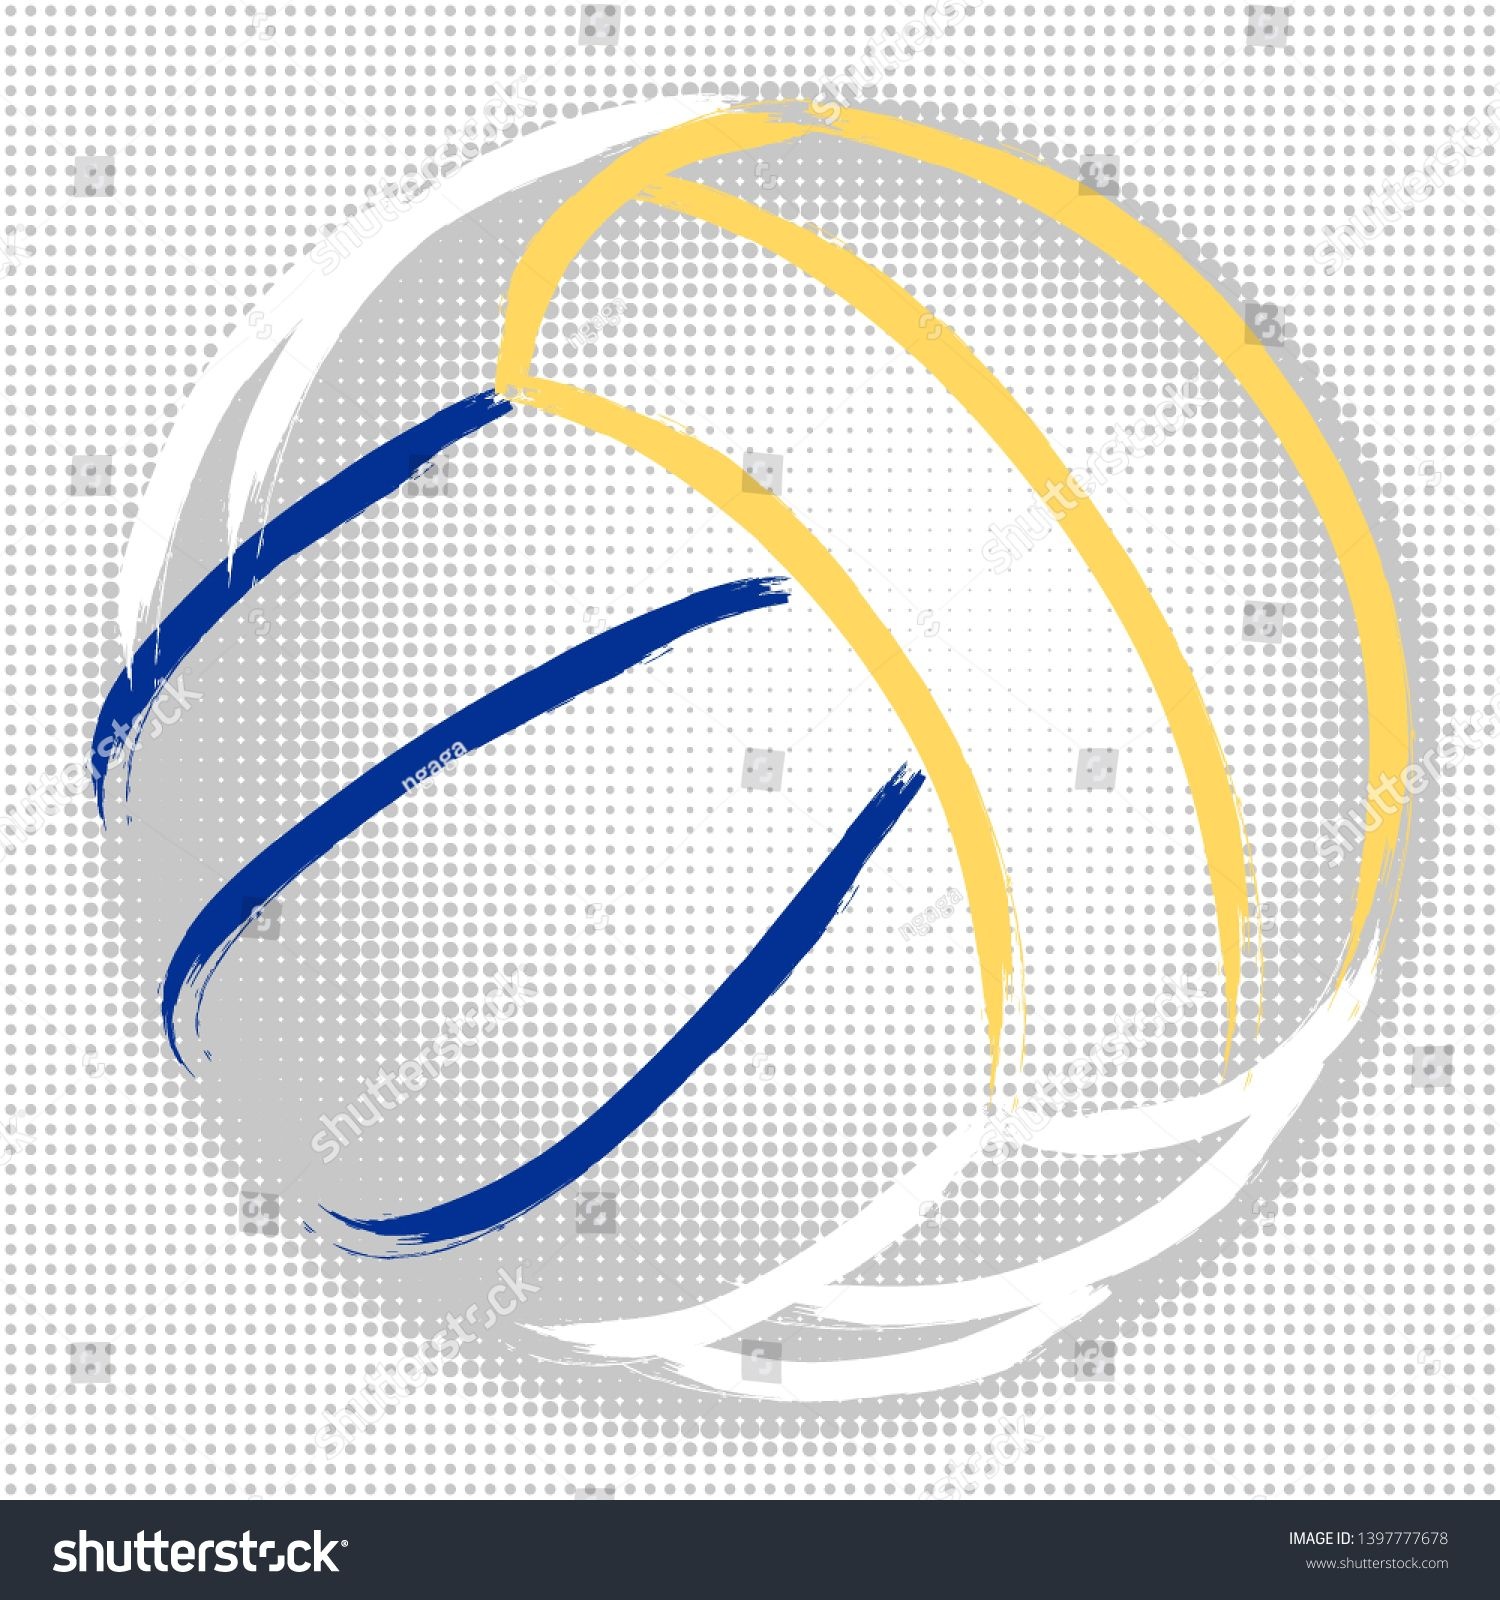 Stylized Illustration Hand Drawing Of A Volleyball With A Halftone Background Sport Vector Ad Sponsored Hand Drawing How To Draw Hands Halftone Stylized